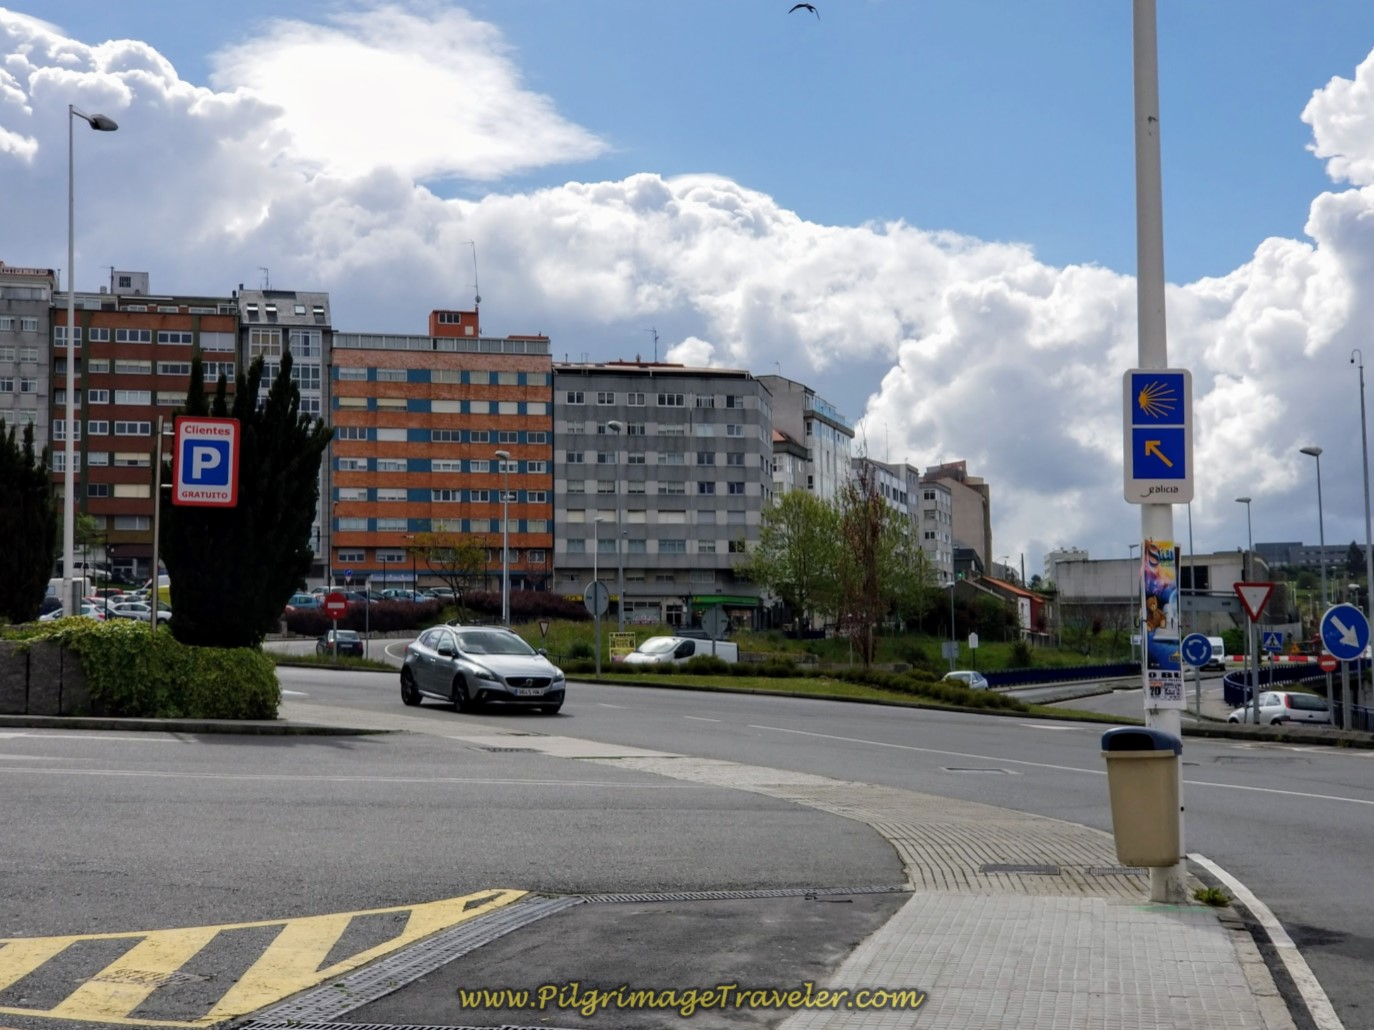 Stay Left on the Avenida de Monelos at Roundabout, in La Coruña on day one of the La Coruña Arm of the Camino Inglés